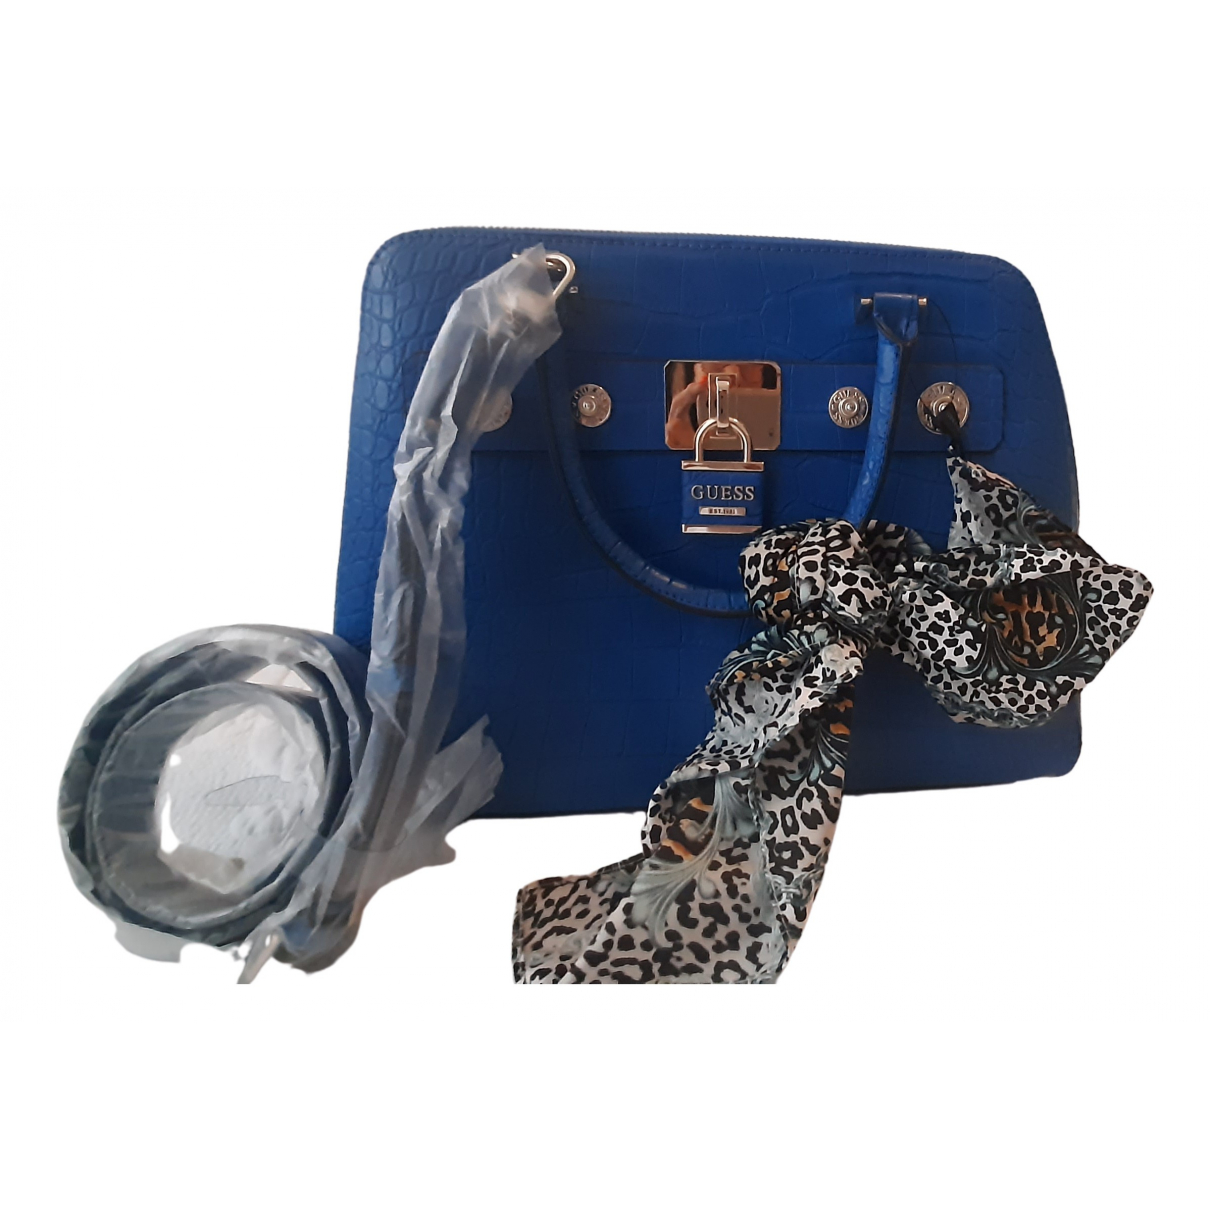 Guess \N Blue Leather handbag for Women \N